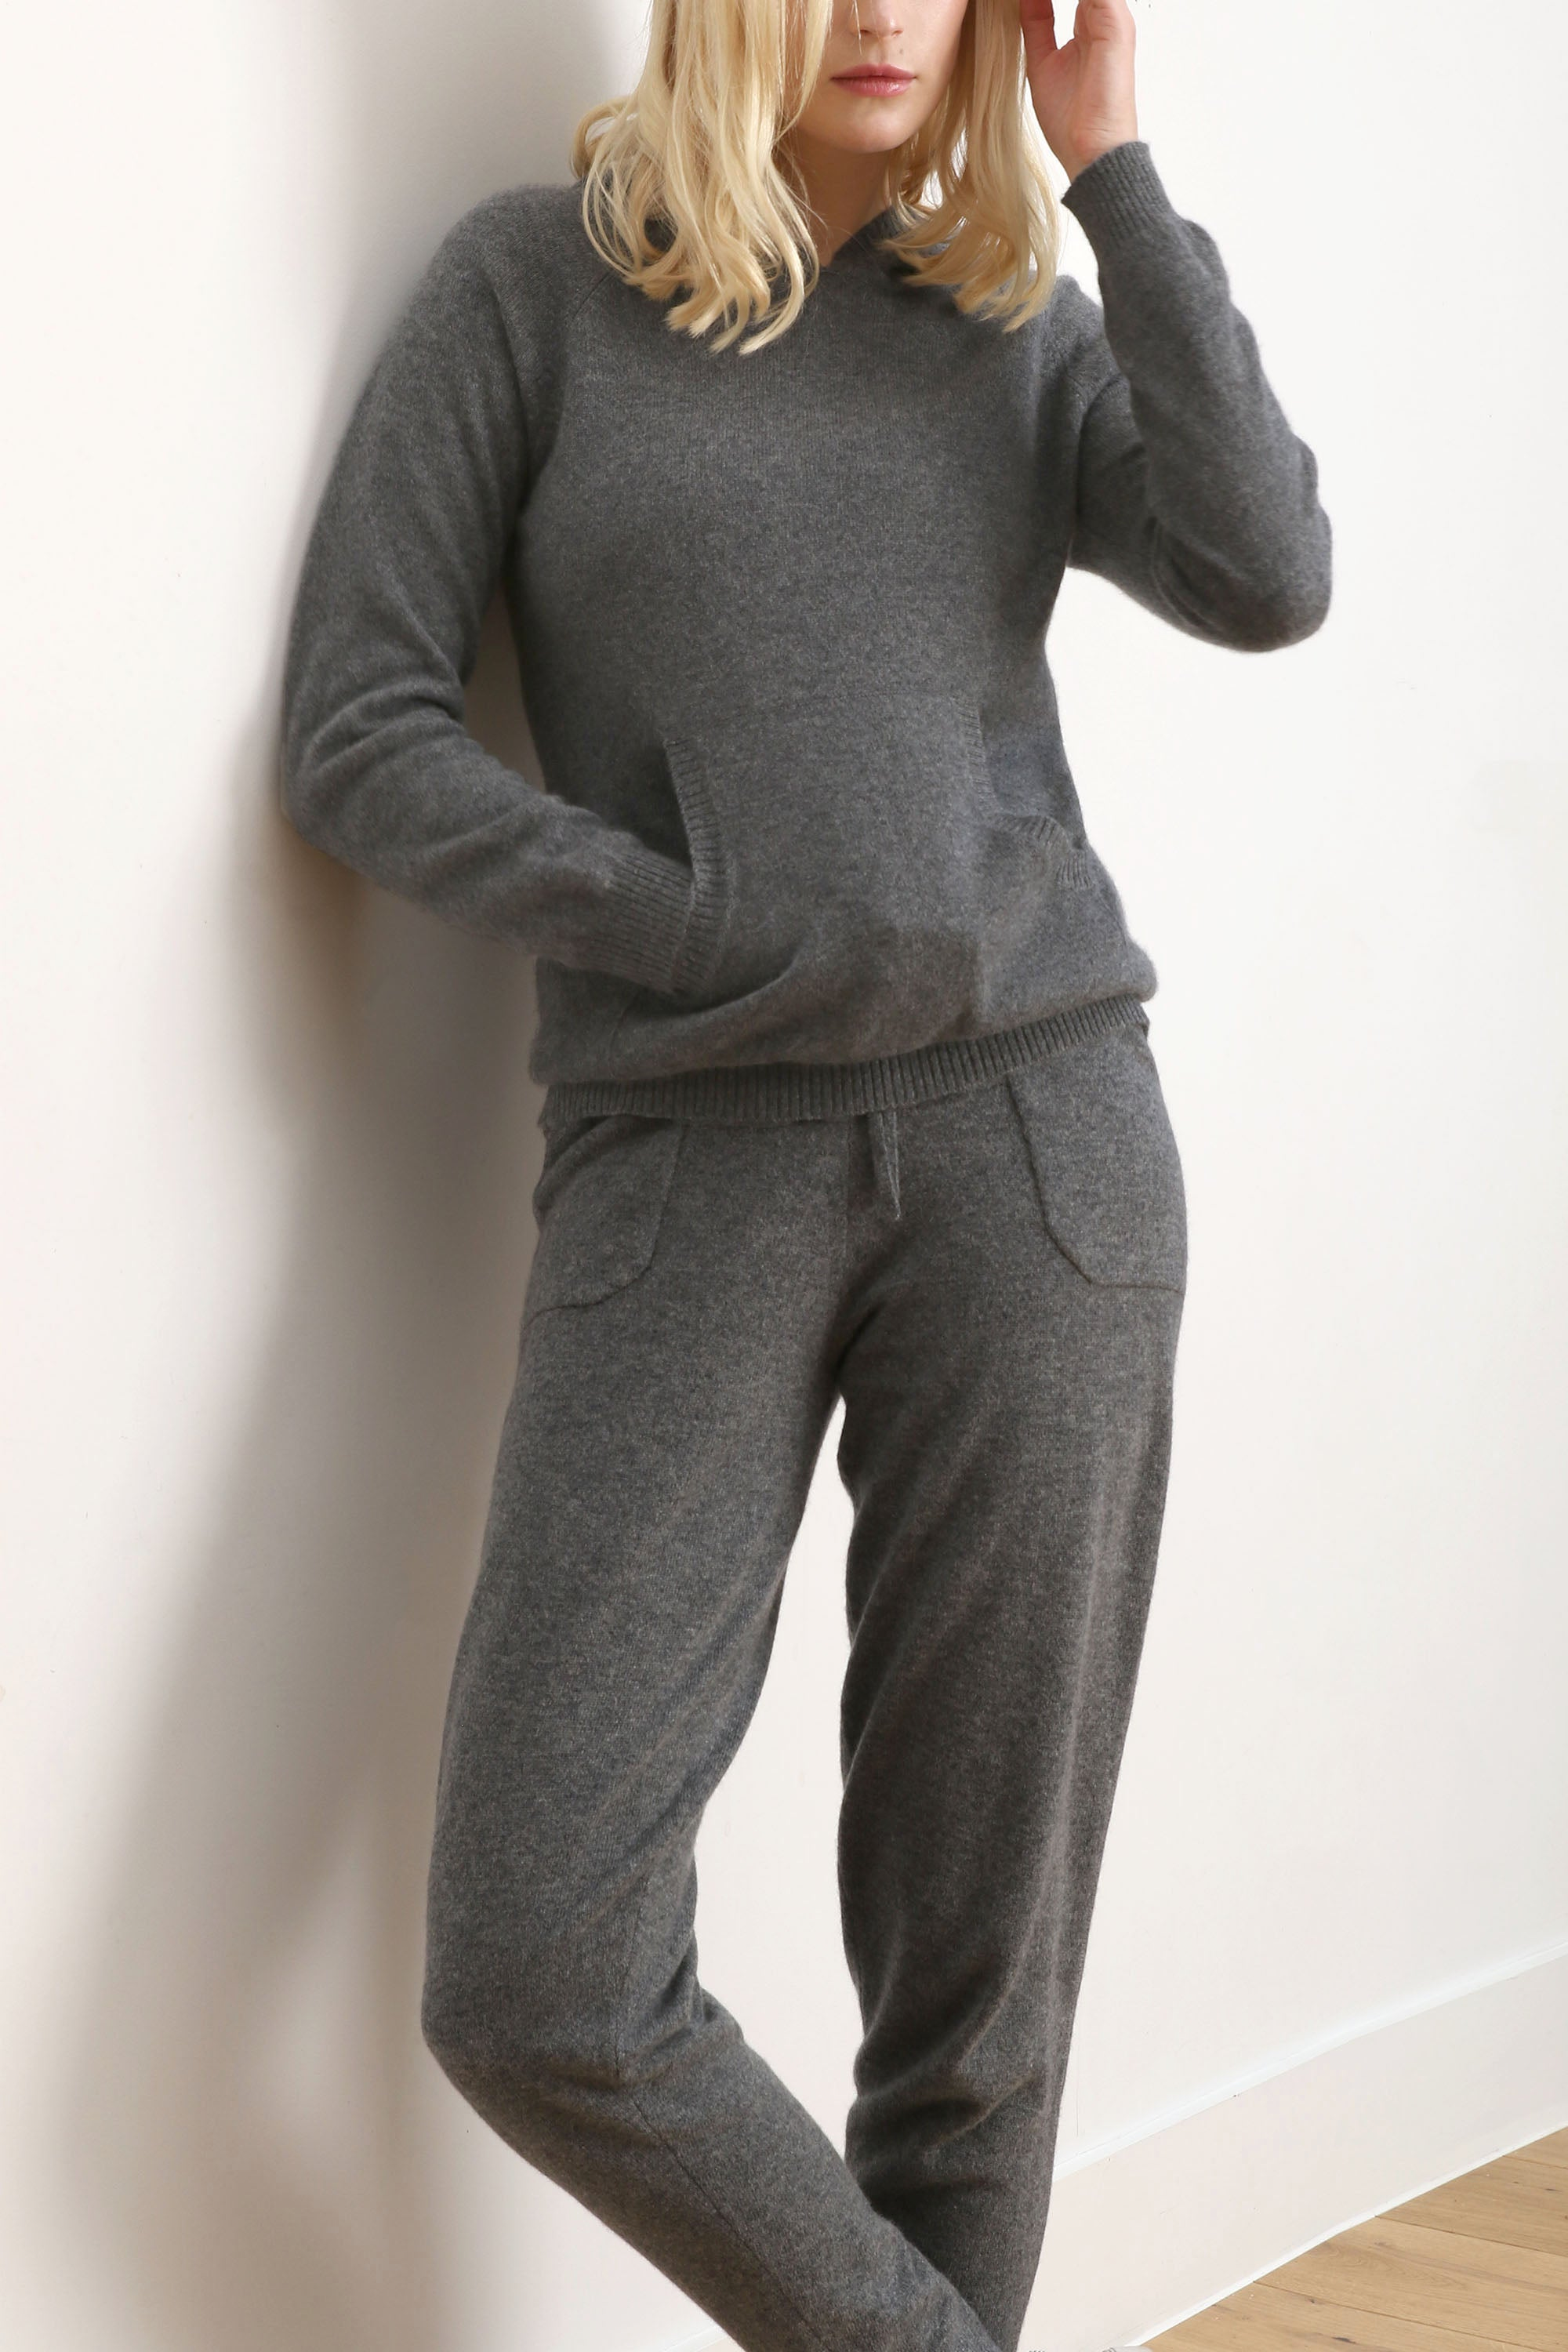 Tracksuit top jogger sweater loungewear hoodie in mid grey | SEMON Cashmere